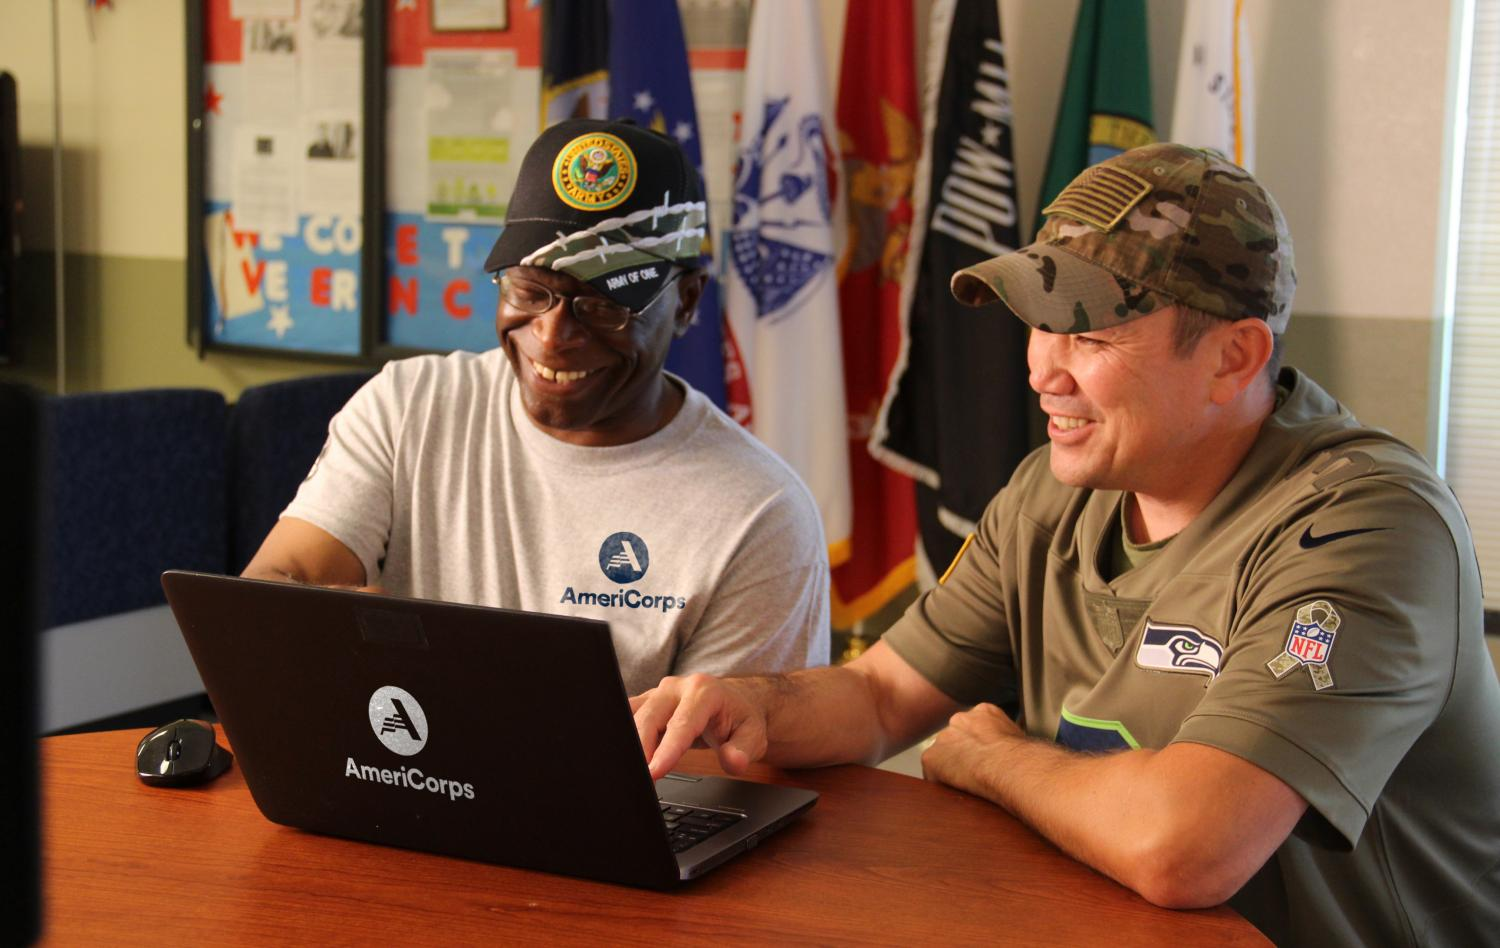 AmeriCorps member with veteran